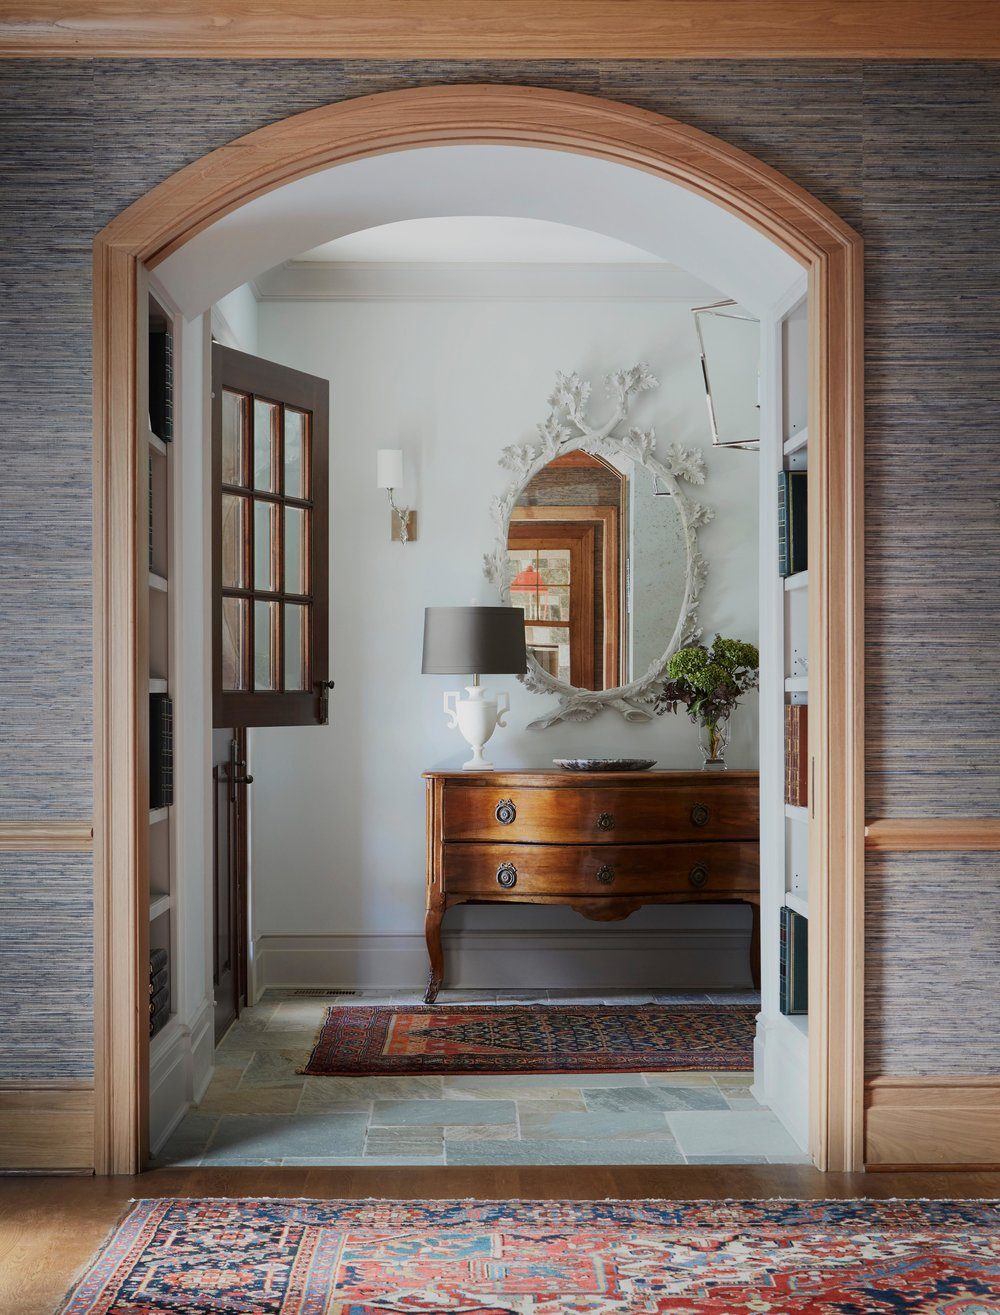 Entry with dutch door, stone floor, and antiques. Come see more interior design inspiration from Elizabeth Drake. Photo by Werner Straube. #interiordesign #classicdesign #traditionaldecor #housetour #elizabethdrake